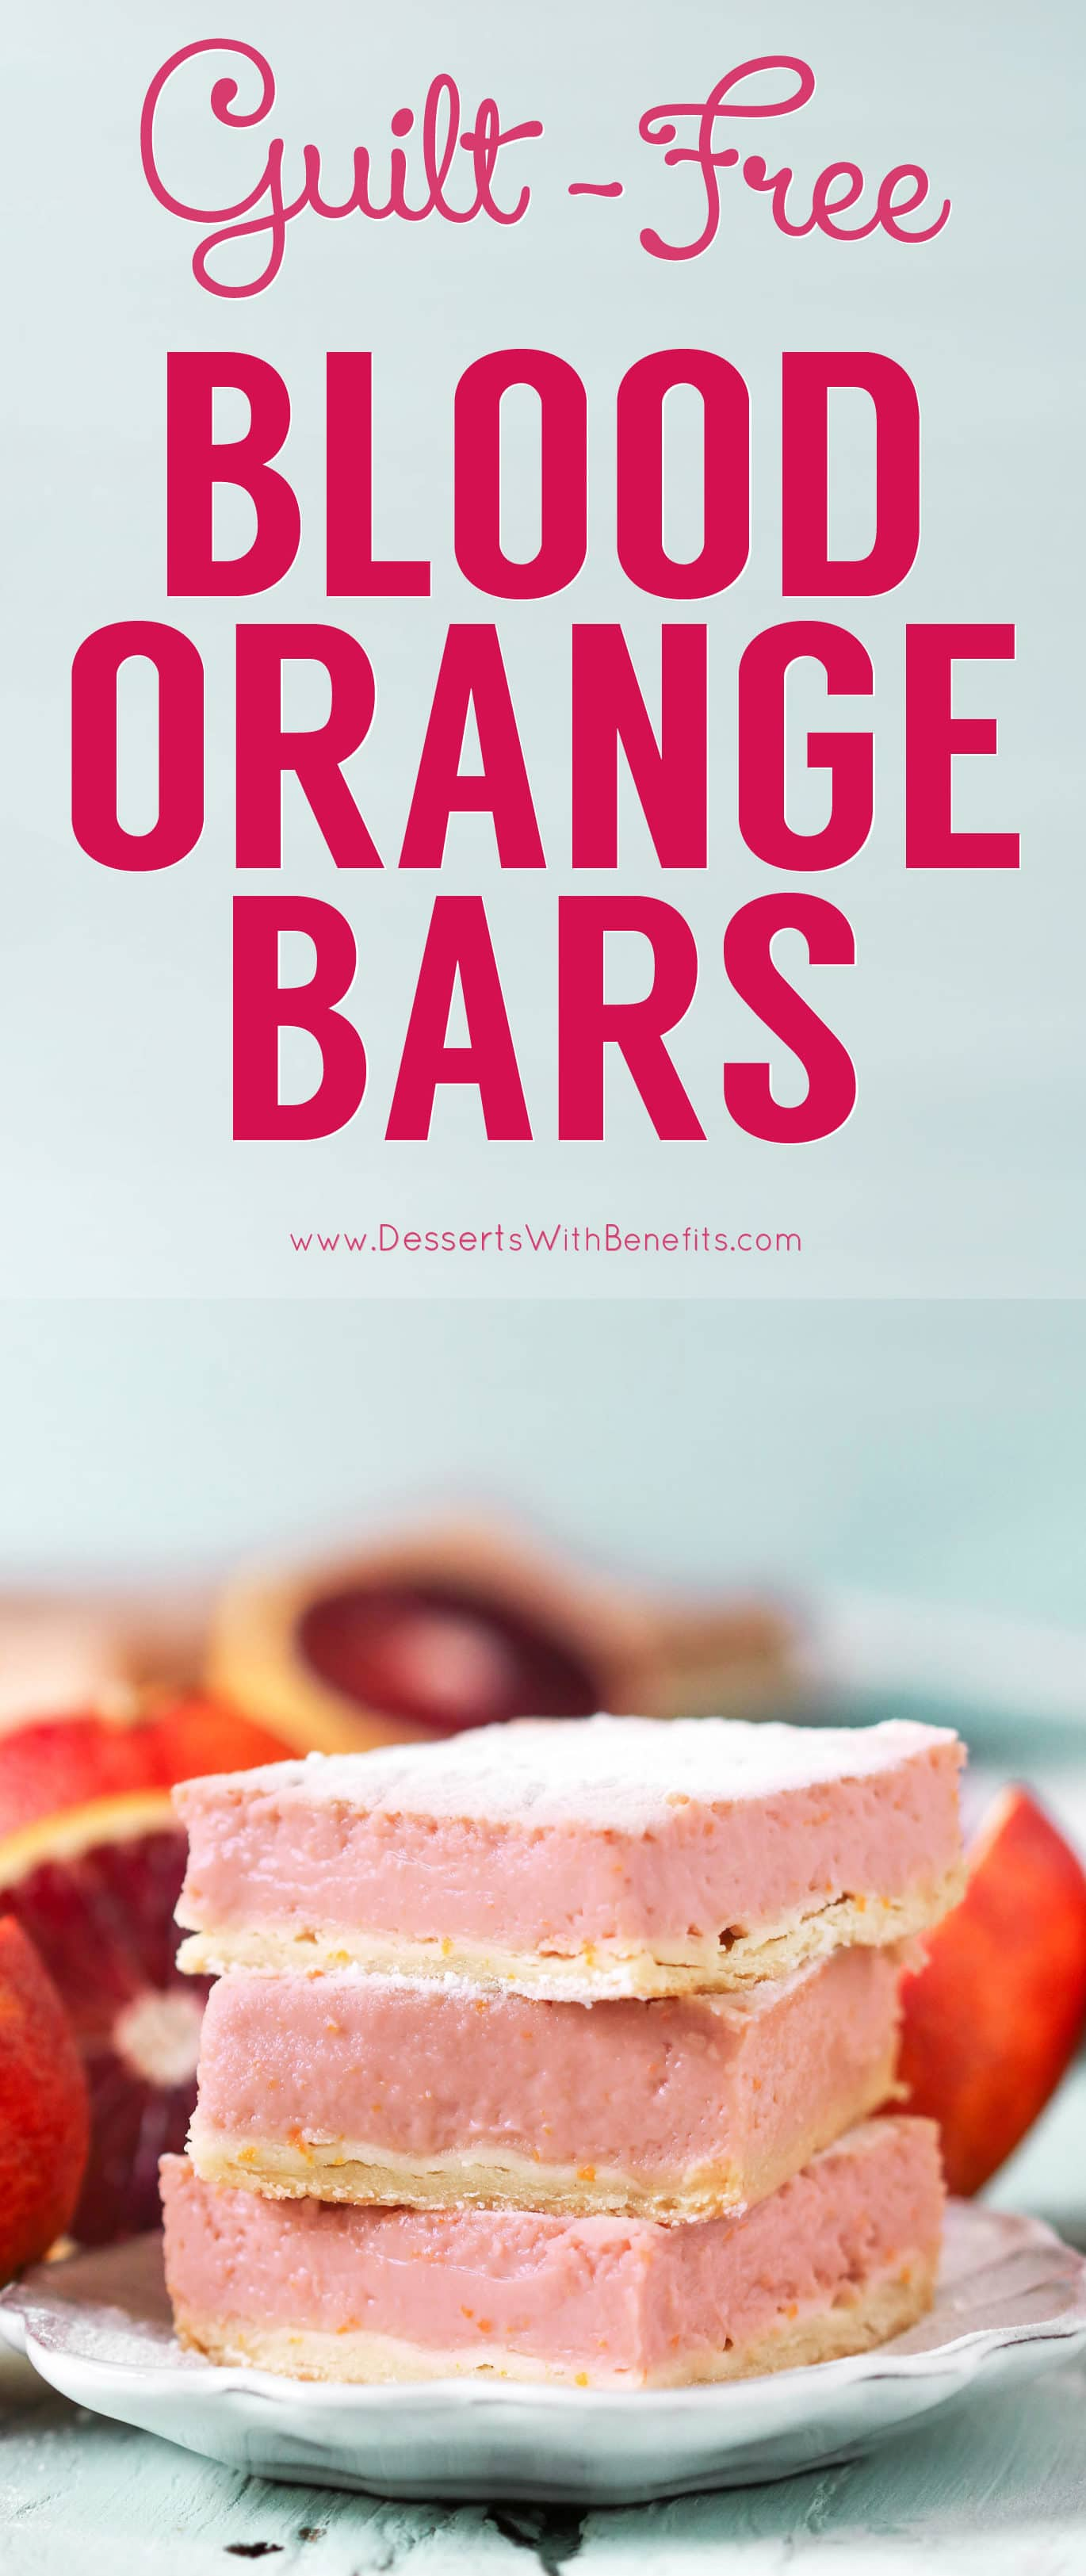 These Blood Orange Bars are perfectly sweet, tart, refreshing, and delicious, you'd never know they're guilt-free! Lower calorie and lower fat than the original, and made without any added butter, oil, or sugar. If you like Lemon Bars, you'll love this recipe! Healthy dessert recipes at the Desserts With Benefits Blog (www.DessertsWithBenefits.com)